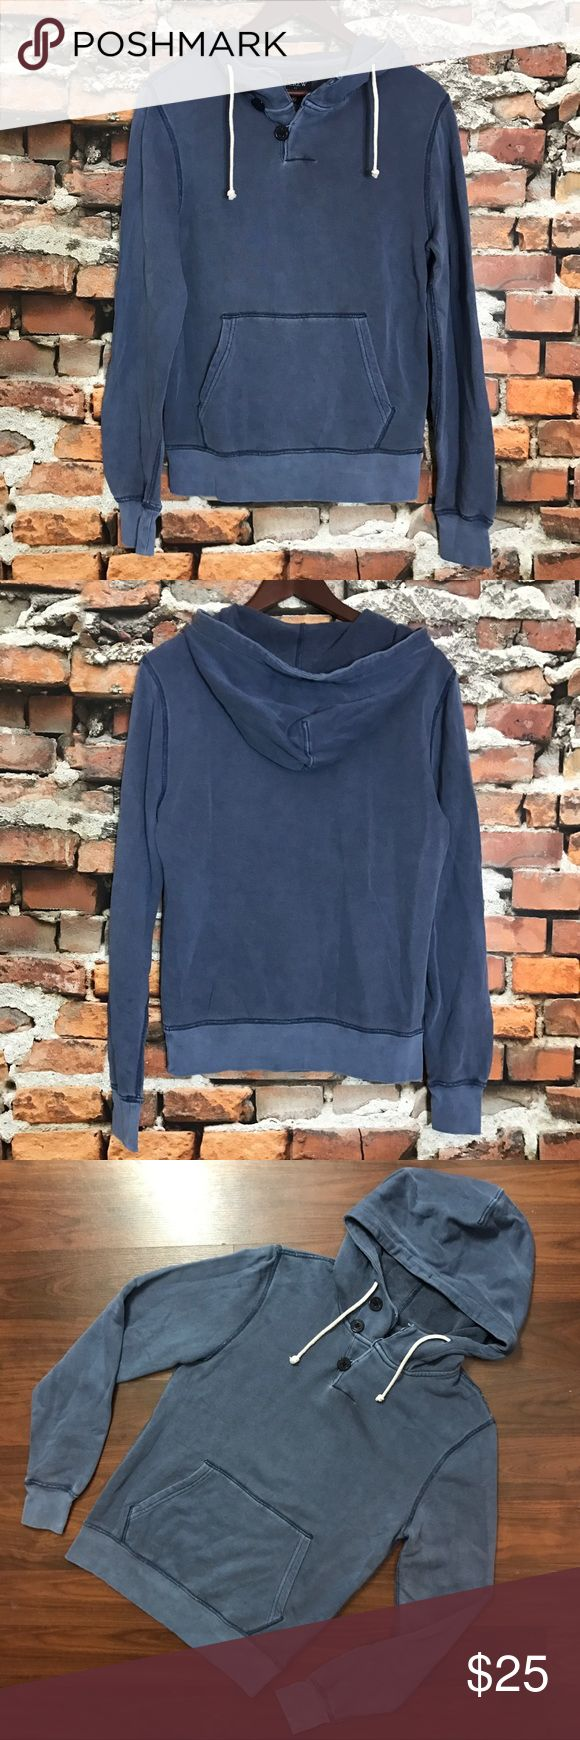 """J Crew Stonewashed Sunwashed Dyed Nautical Hoodie J Crew Blue Stonewashed Sunwashed Garment Dyed Nautical Hoodie Mens XS Womens S  *Excellent Used Condition! Made to look worn.  Measurements: 36"""" Bust 25"""" Length J. Crew Factory Sweaters"""